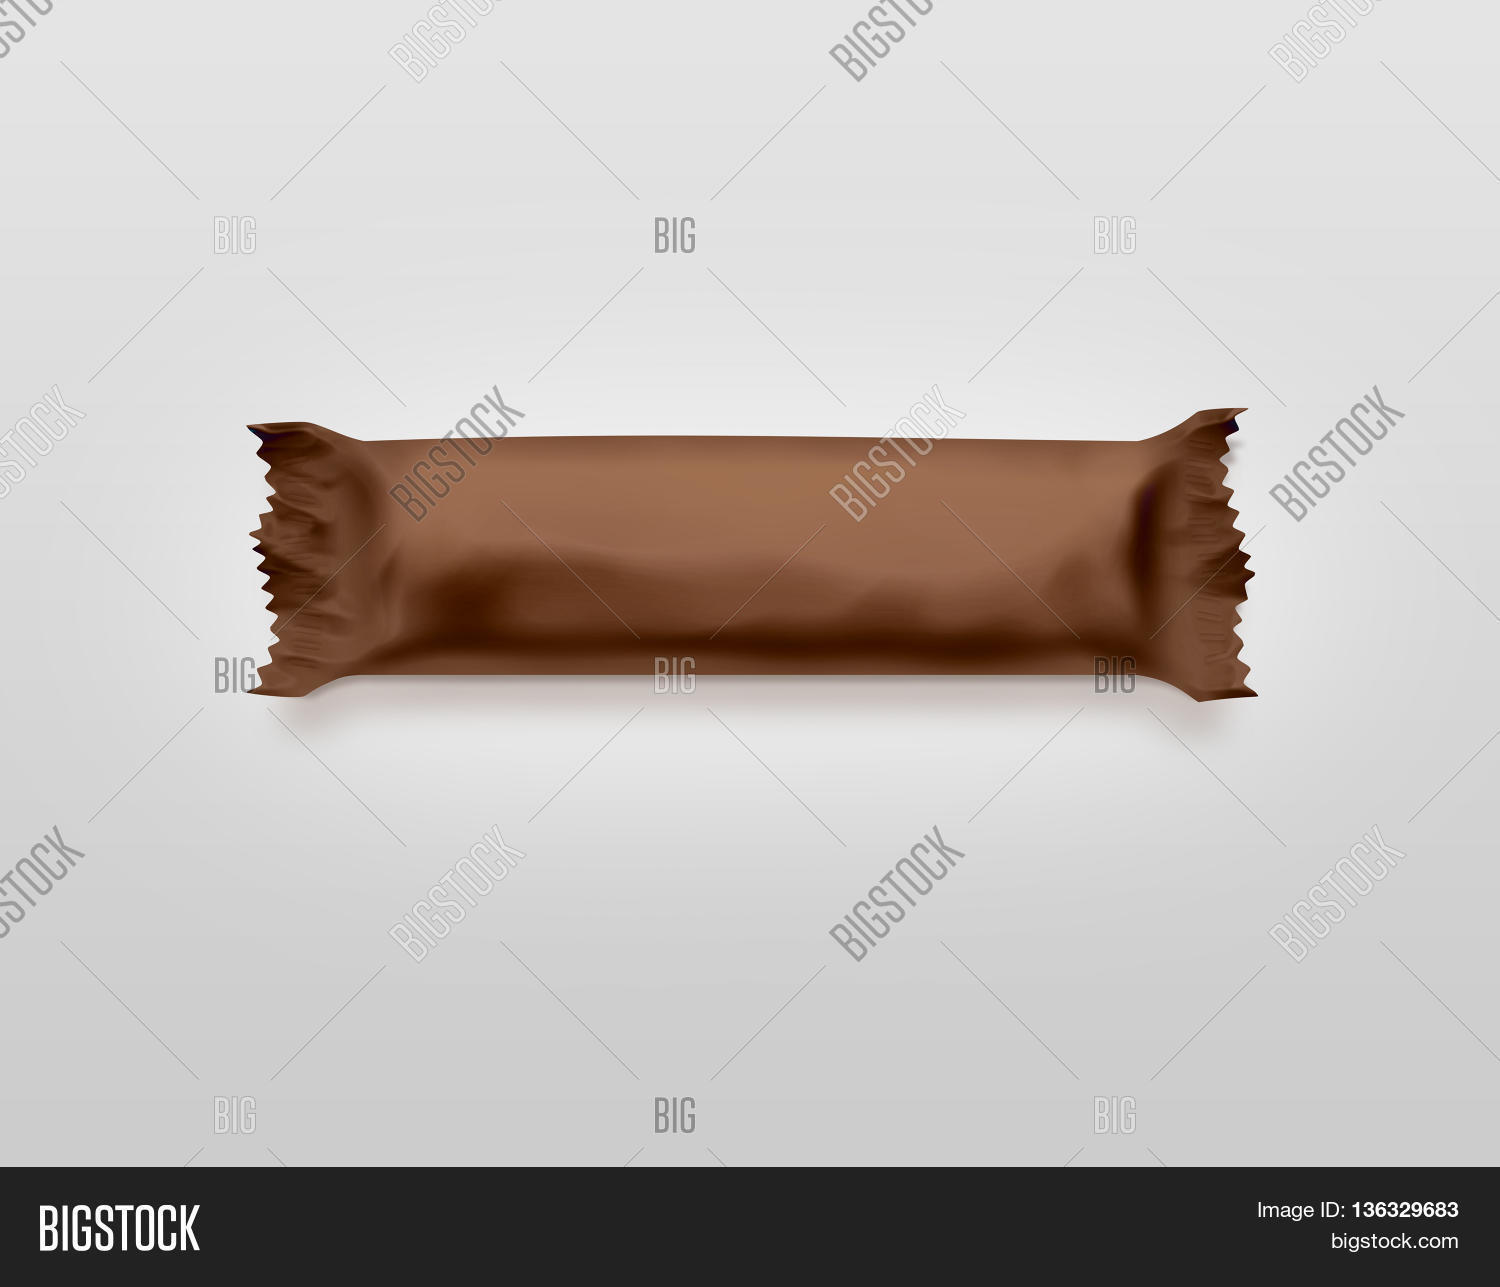 blank brown candy bar plastic wrap mockup isolated 3d illustration empty chocolate bar packaging wrapper